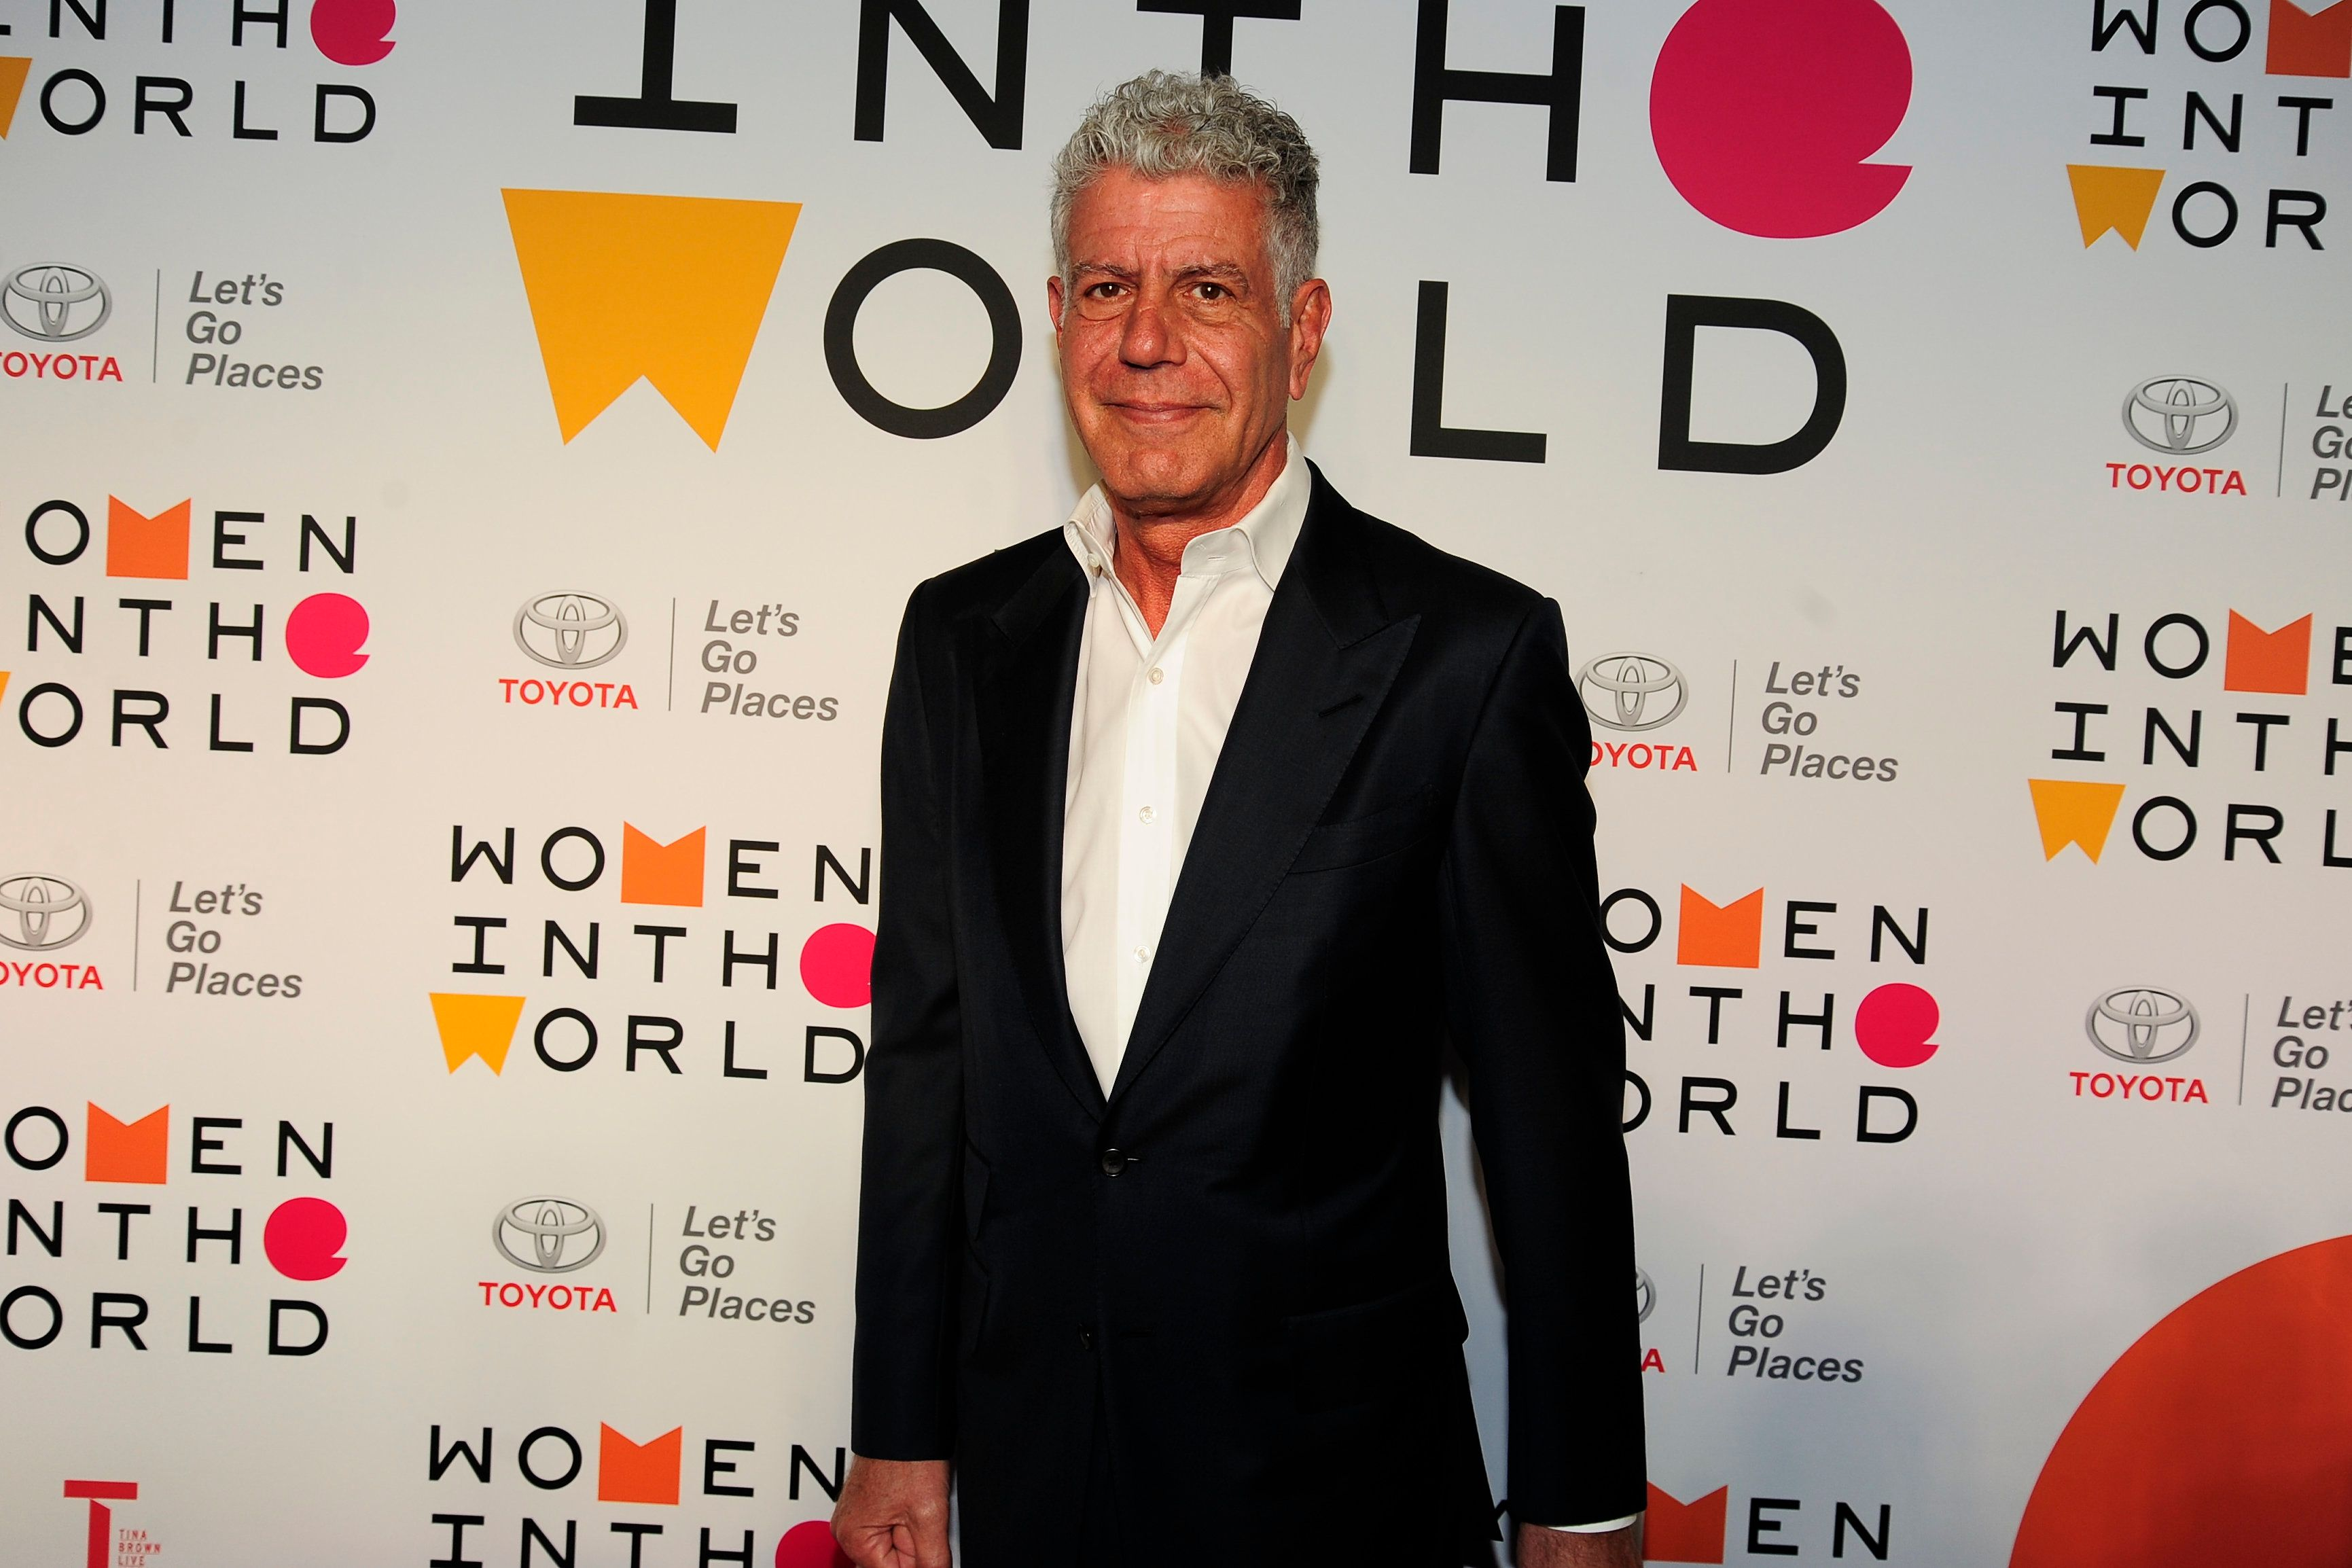 NEW YORK, NY - APRIL 12: Anthony Bourdain attends the 2018 Women In The World Summit at David H. Koch Theater, Lincoln Center on April 12, 2018 in New York City.  (Photo by Paul Bruinooge/Patrick McMullan via Getty Images)